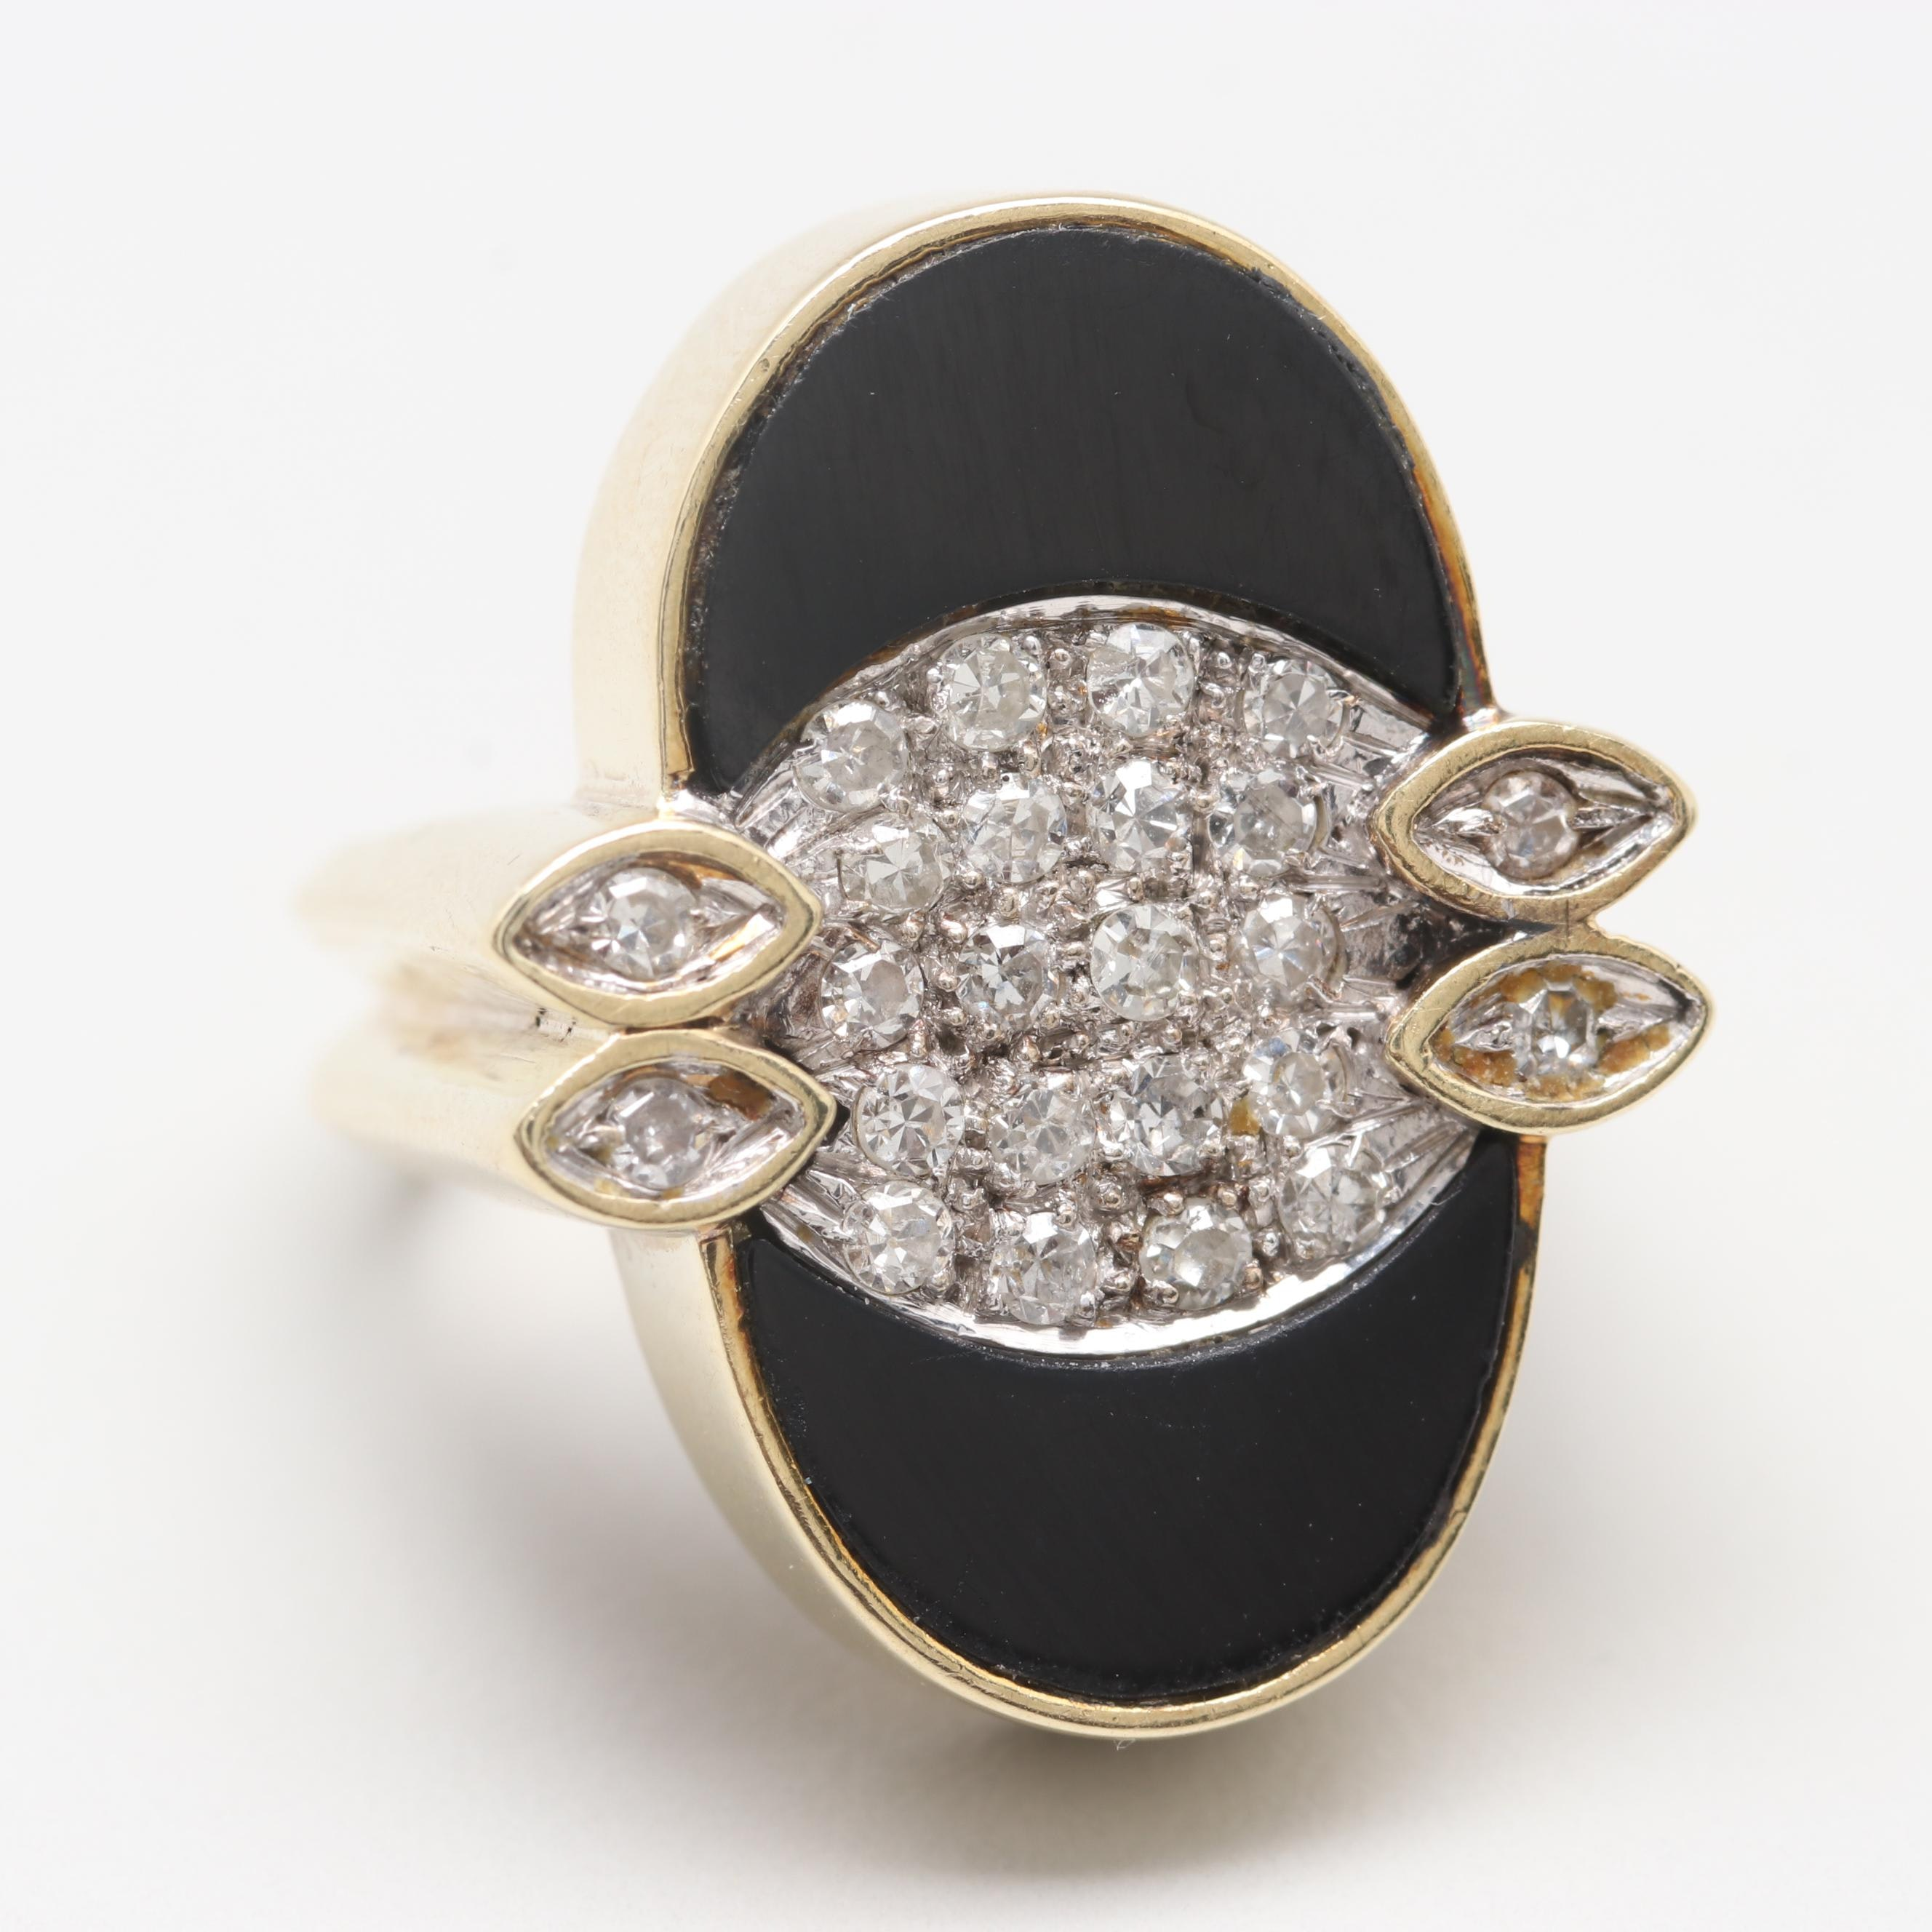 14K Yellow Gold Black Onyx and Diamond Ring with White Gold Accents